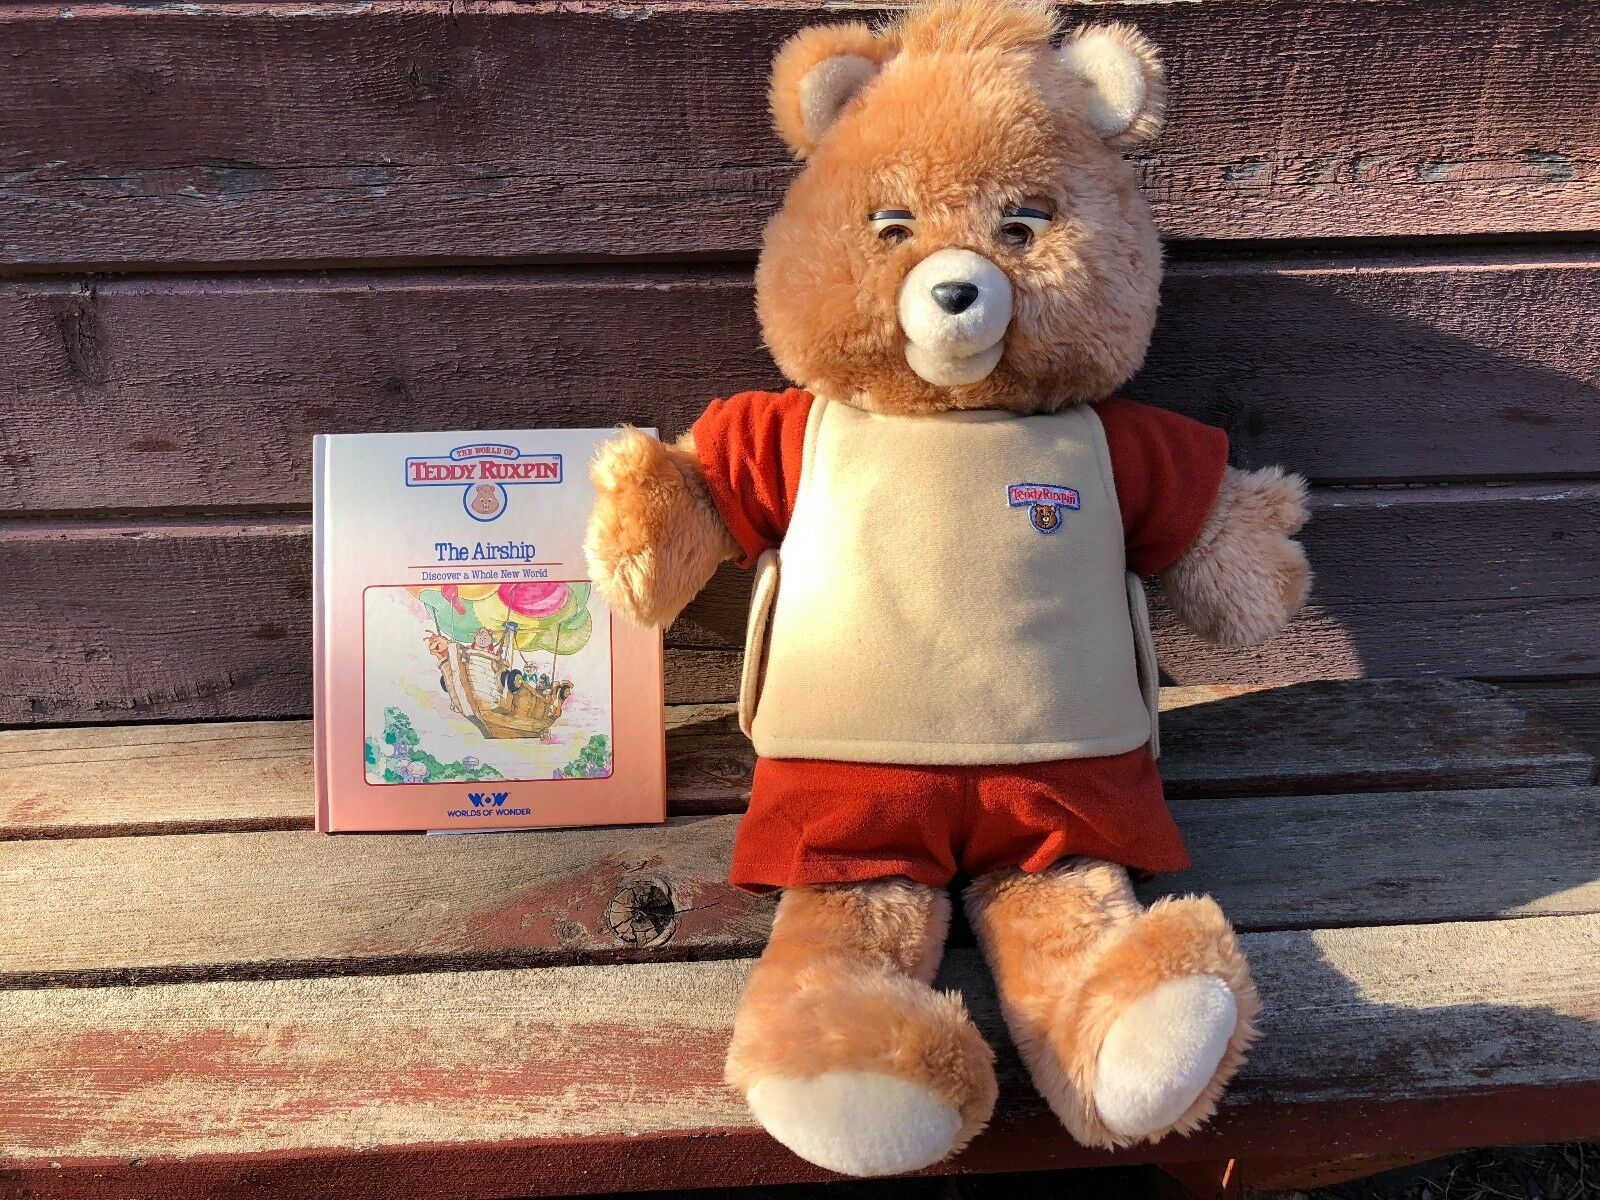 Vintage TEDDY RUXPIN Talking Bear w Book and Tape The Airship Works